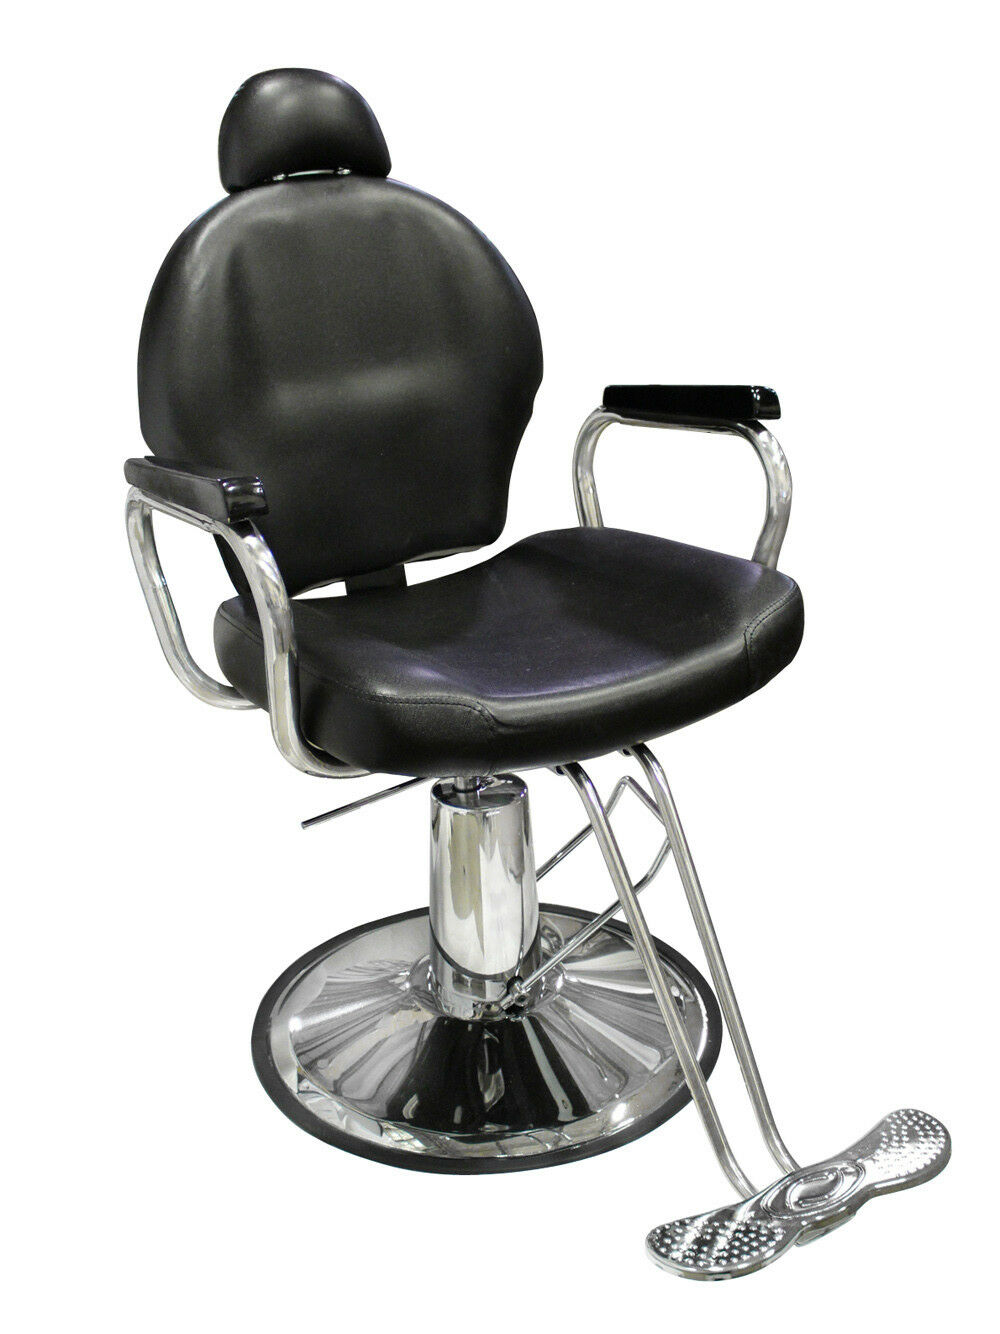 all purpose salon chairs reclining movie theater for sale new hydraulic barber chair styling beauty spa shampoo equipment | ebay